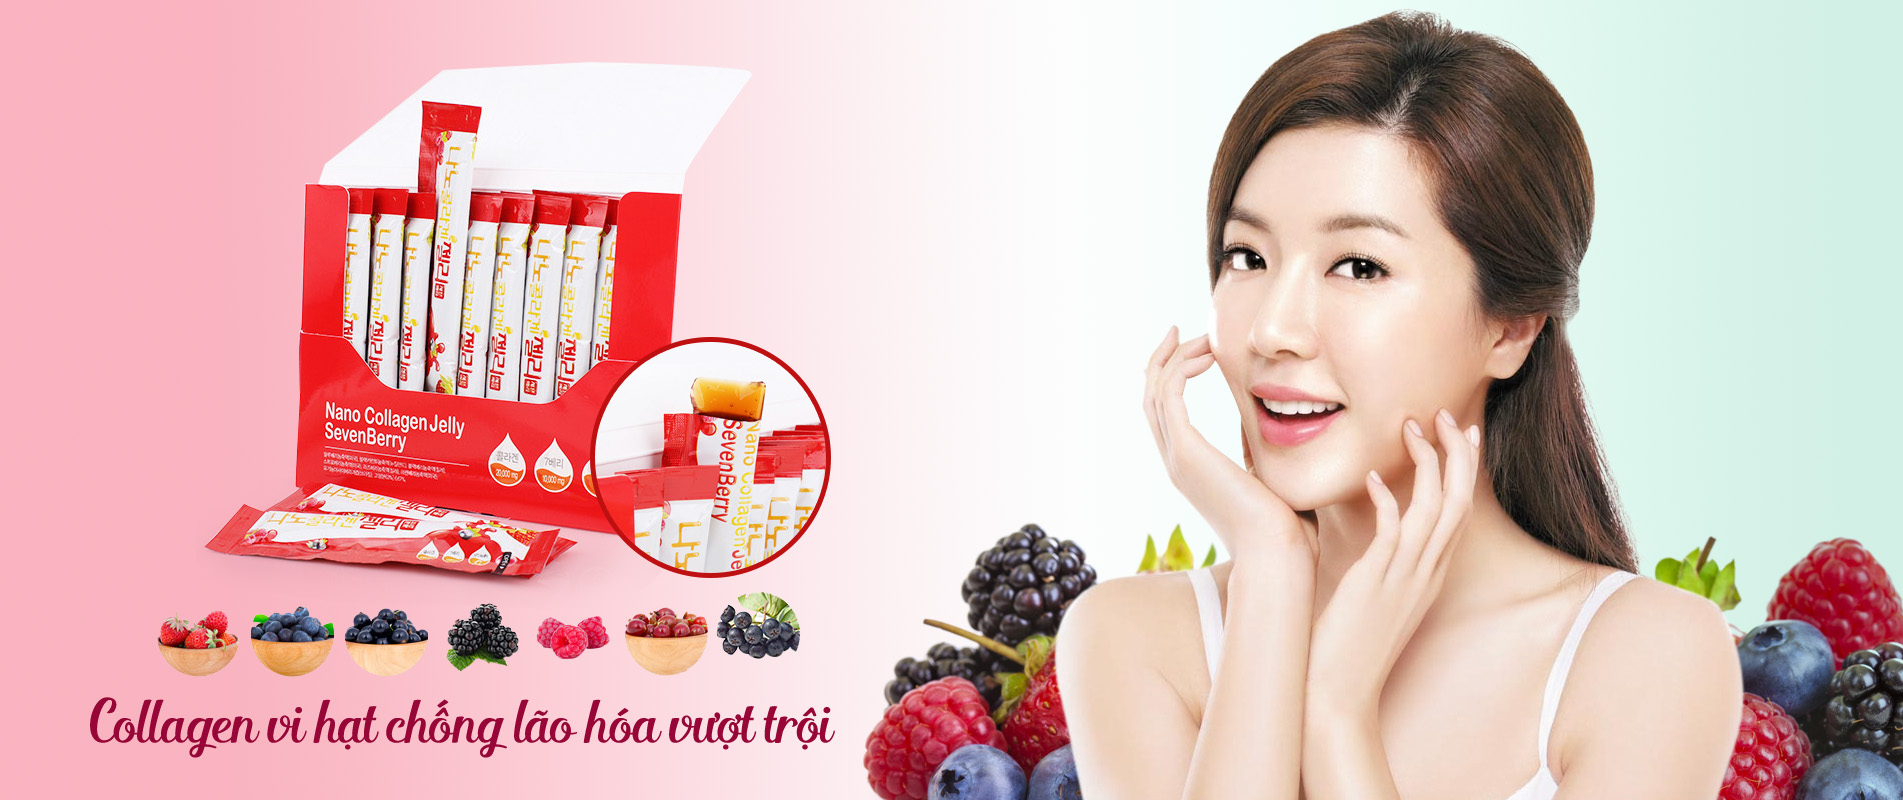 collagen-nguon-duong-chat-khong-the-thieu-cua-co-the